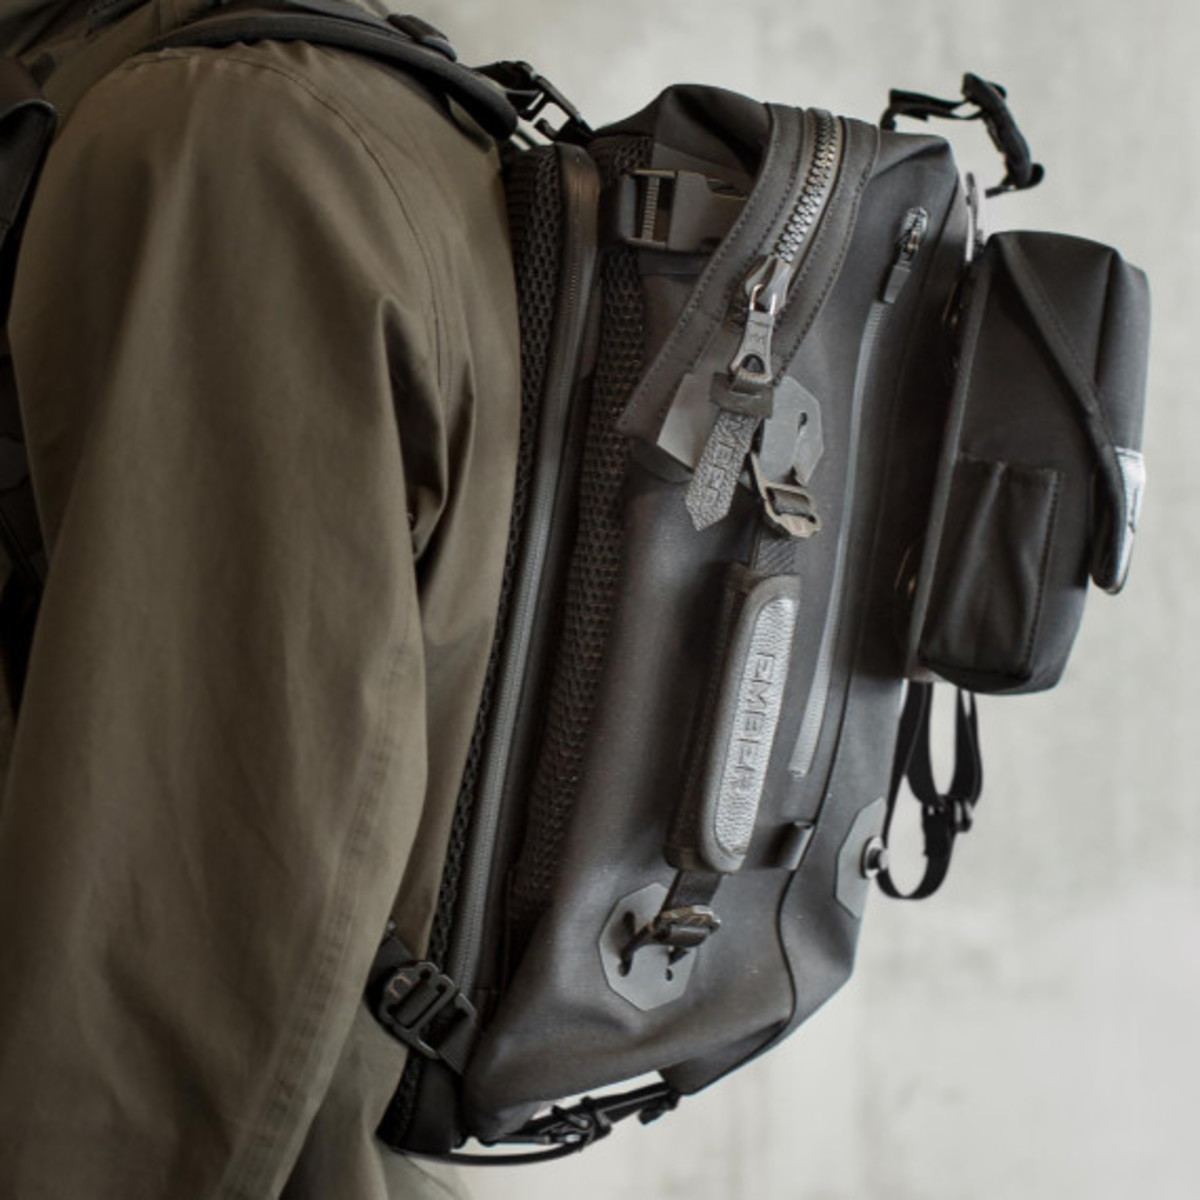 Modular Urban Backpack by EMBER EQUIPMENT - 3